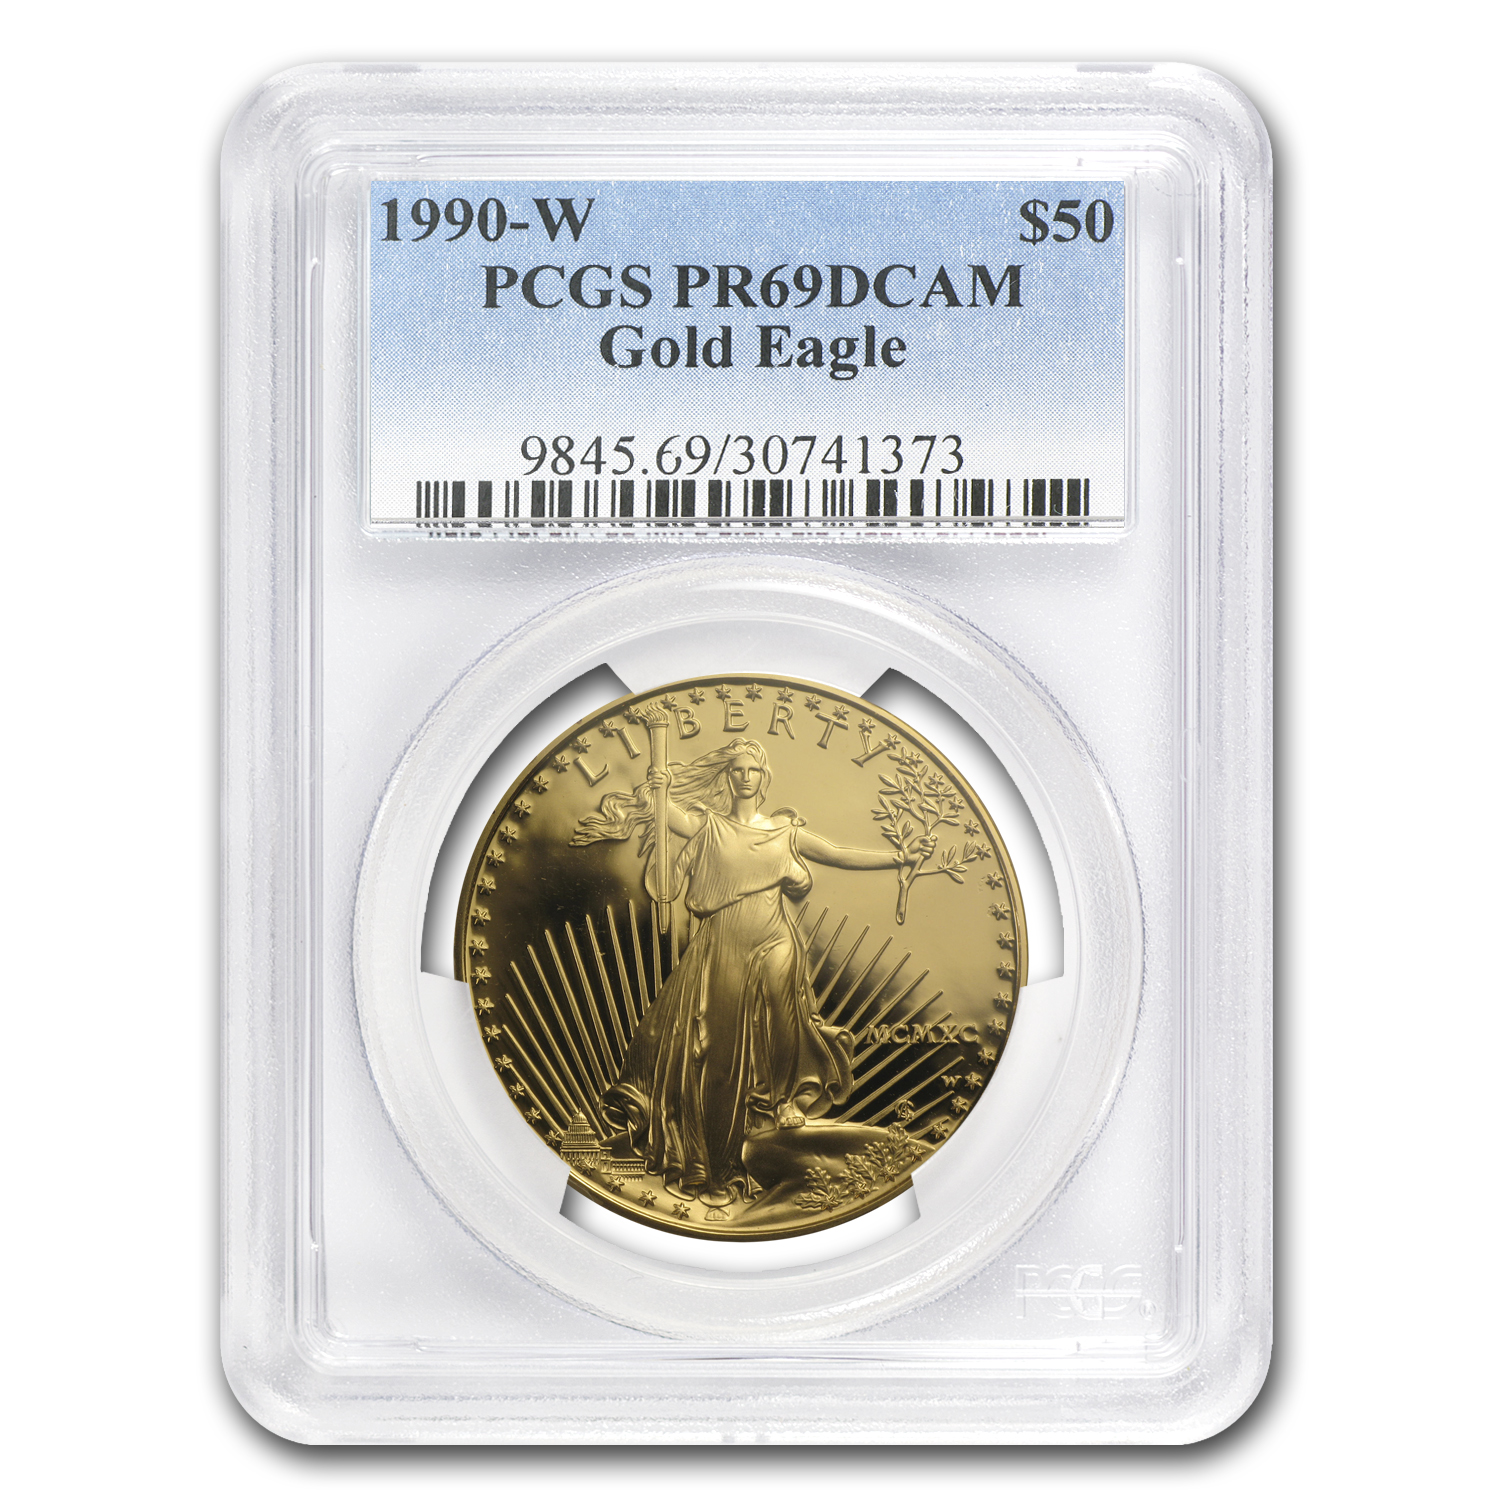 1990-W 1 oz Proof Gold American Eagle PR-69 PCGS